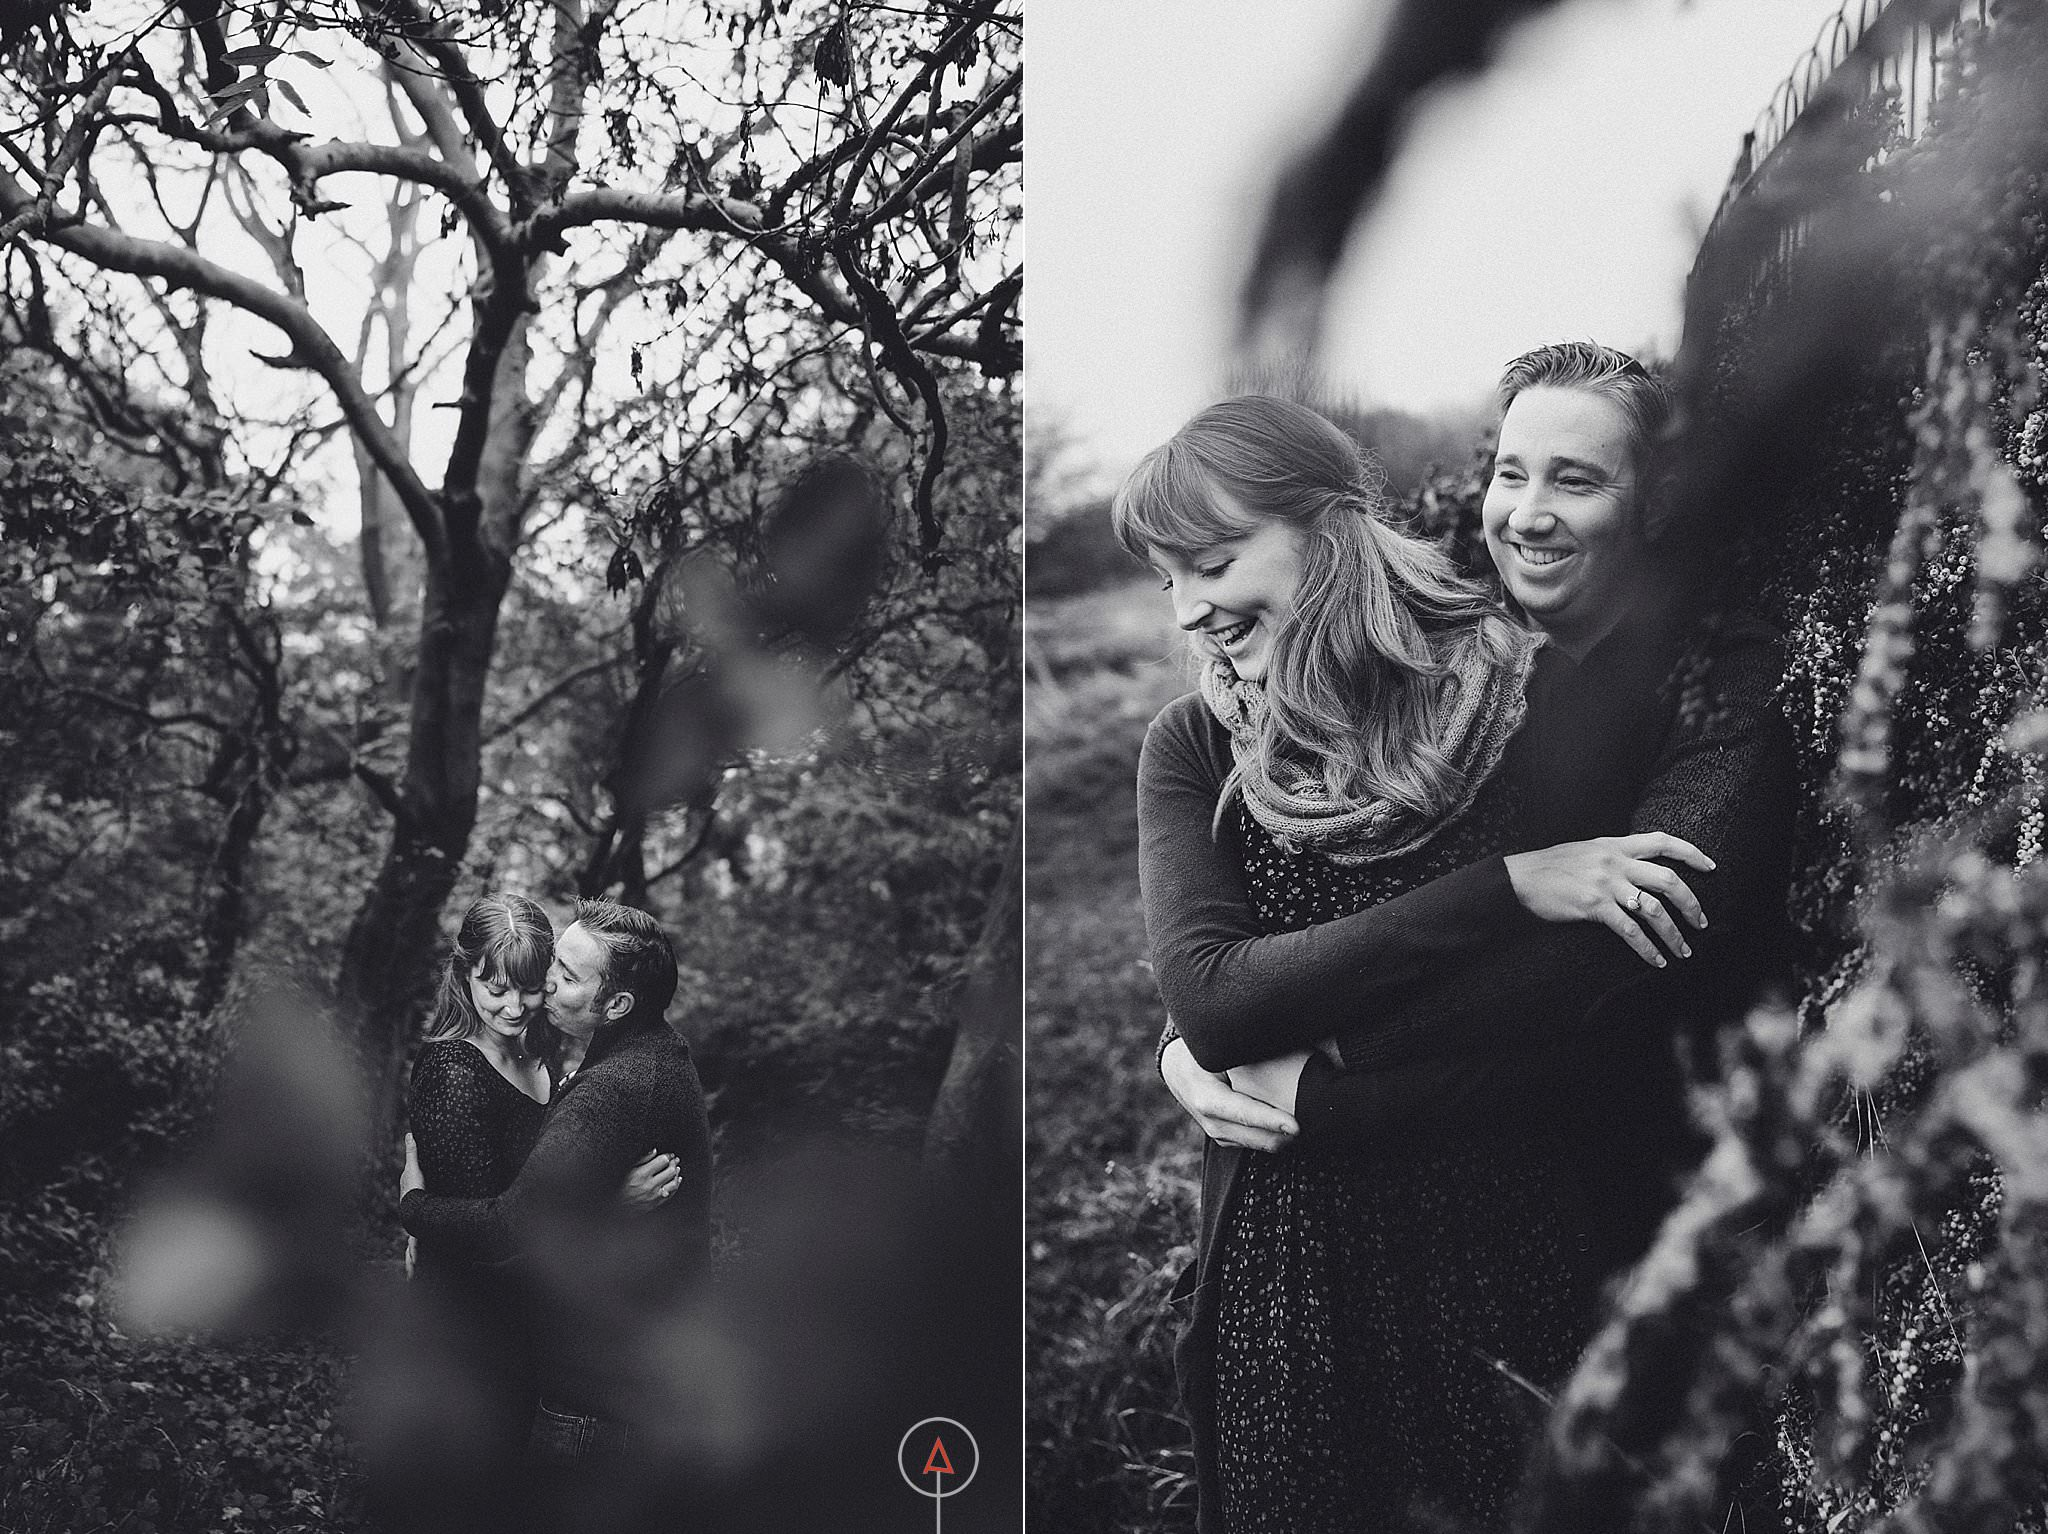 South-Wales-Pre-Wedding-Photography-Aga-Tomaszek-00010